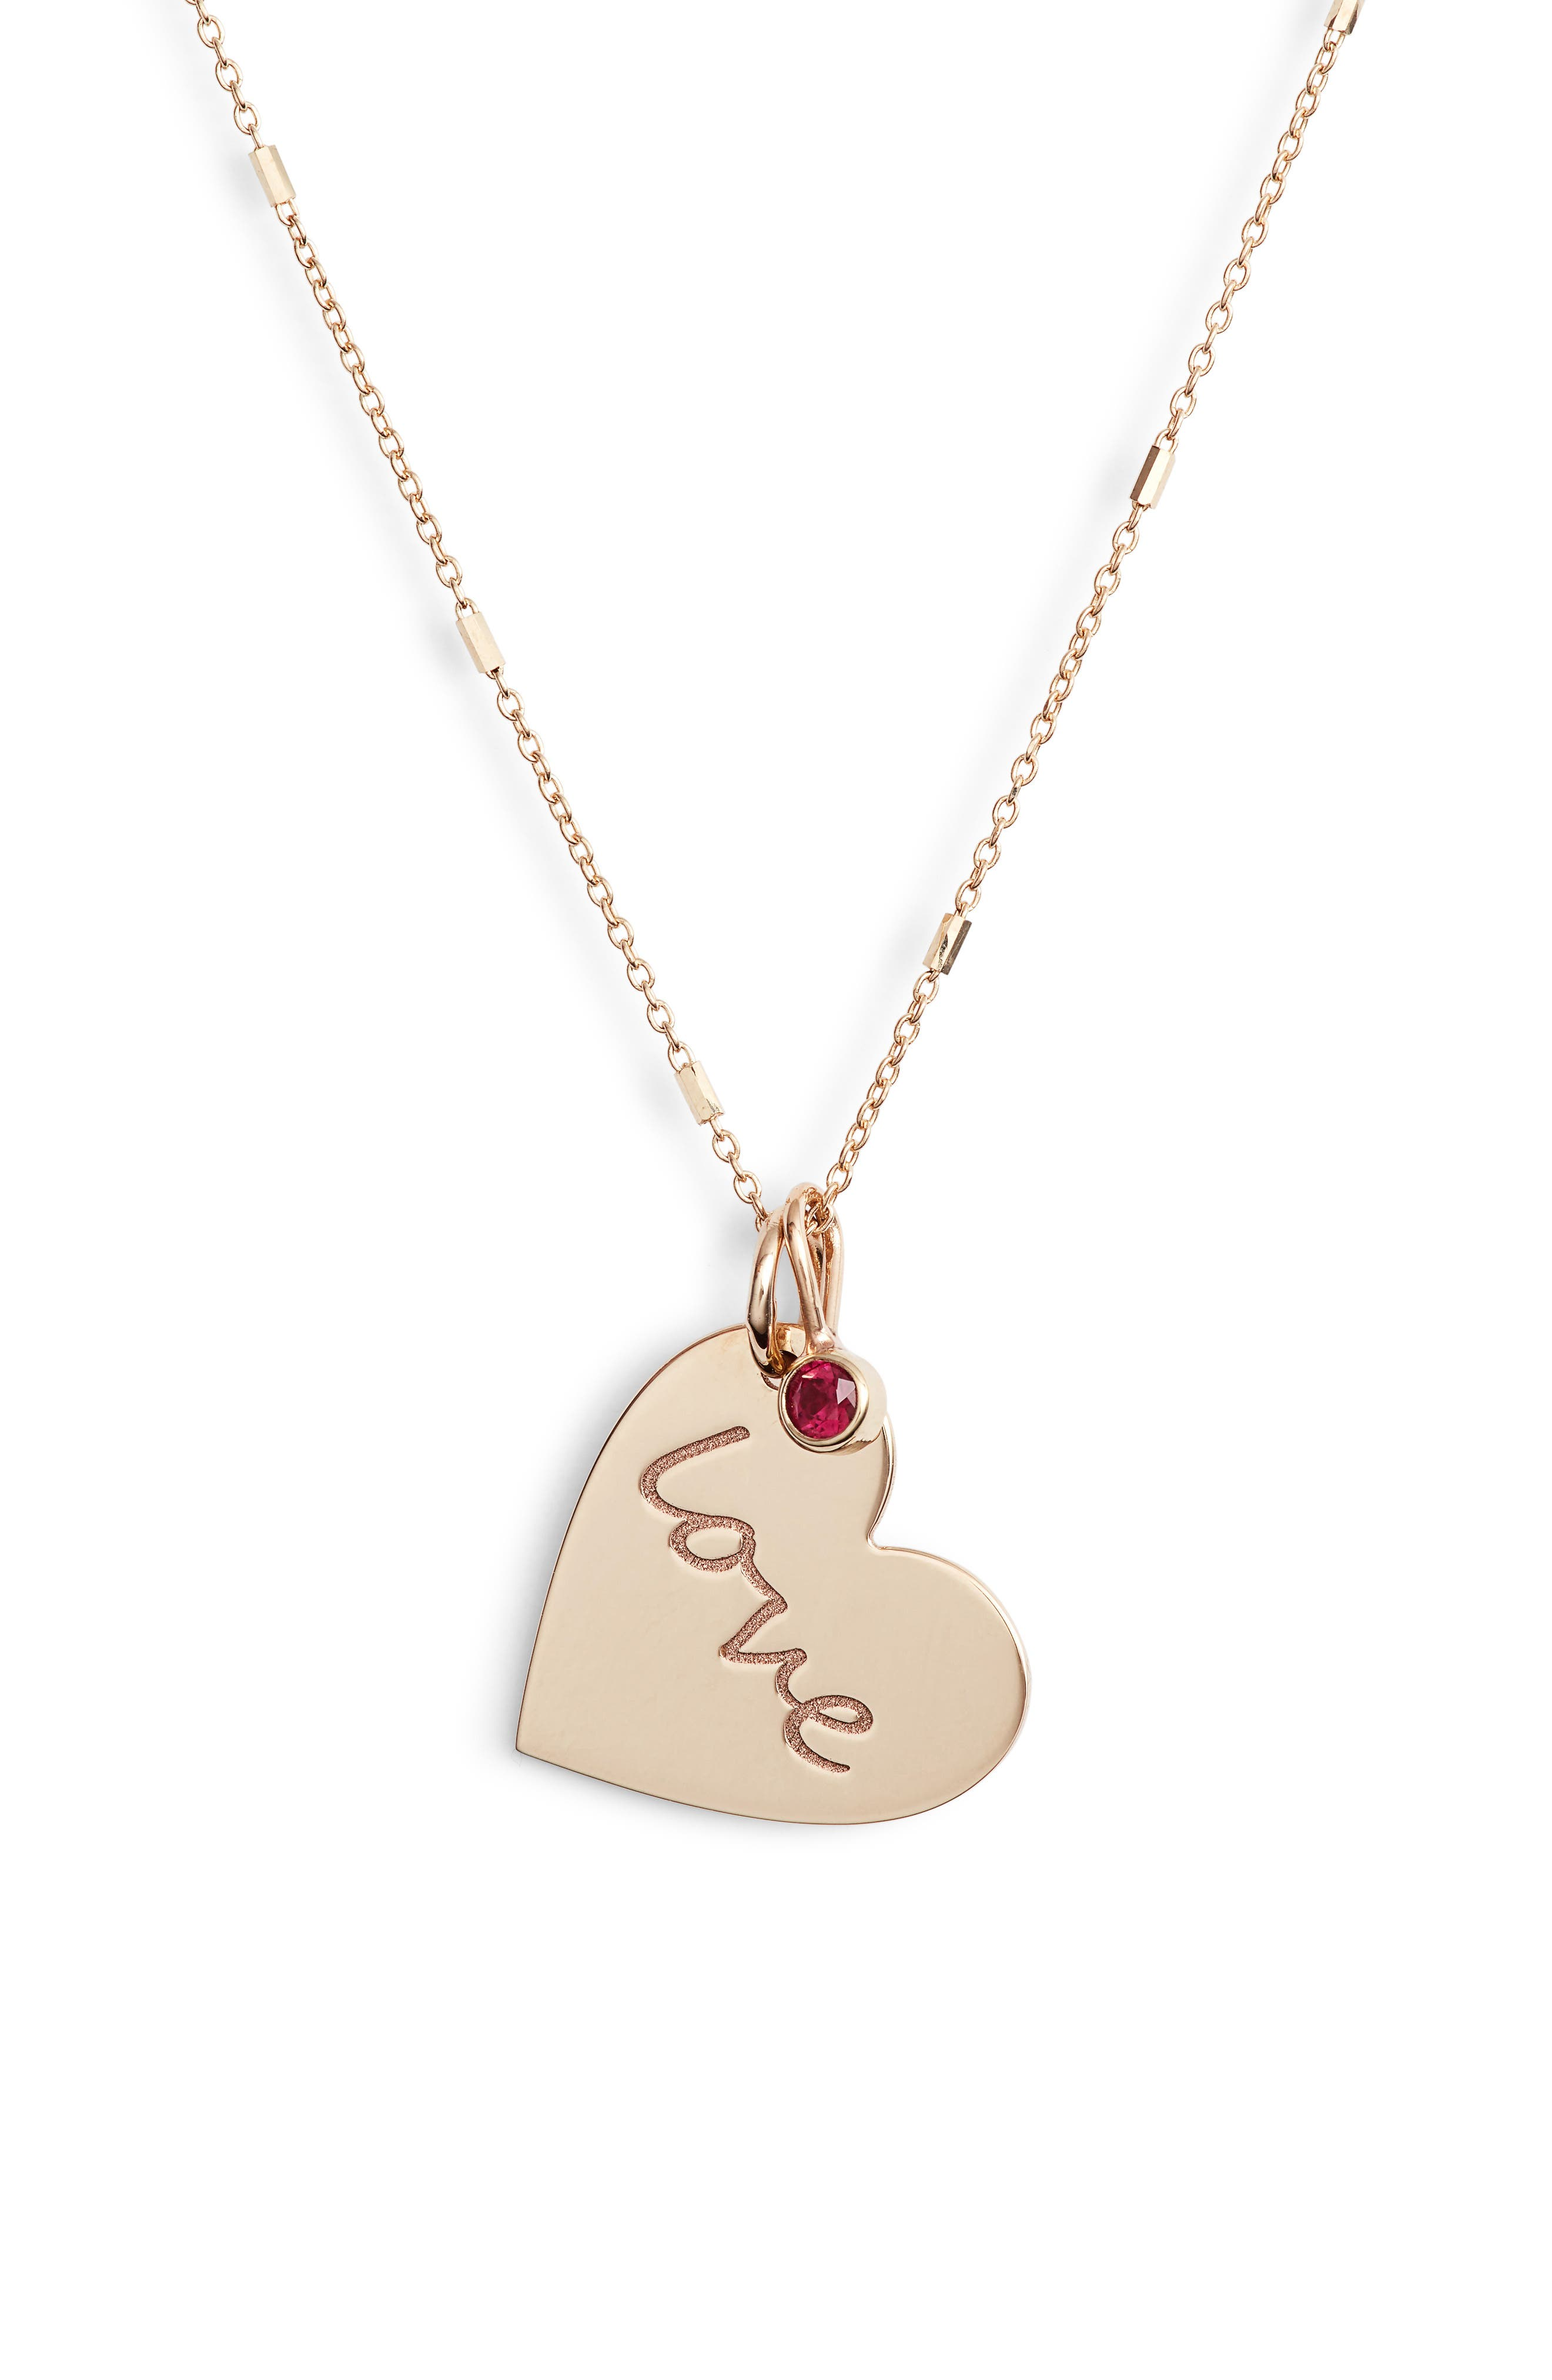 Zoe Chicco Heart With Love Charm Necklace